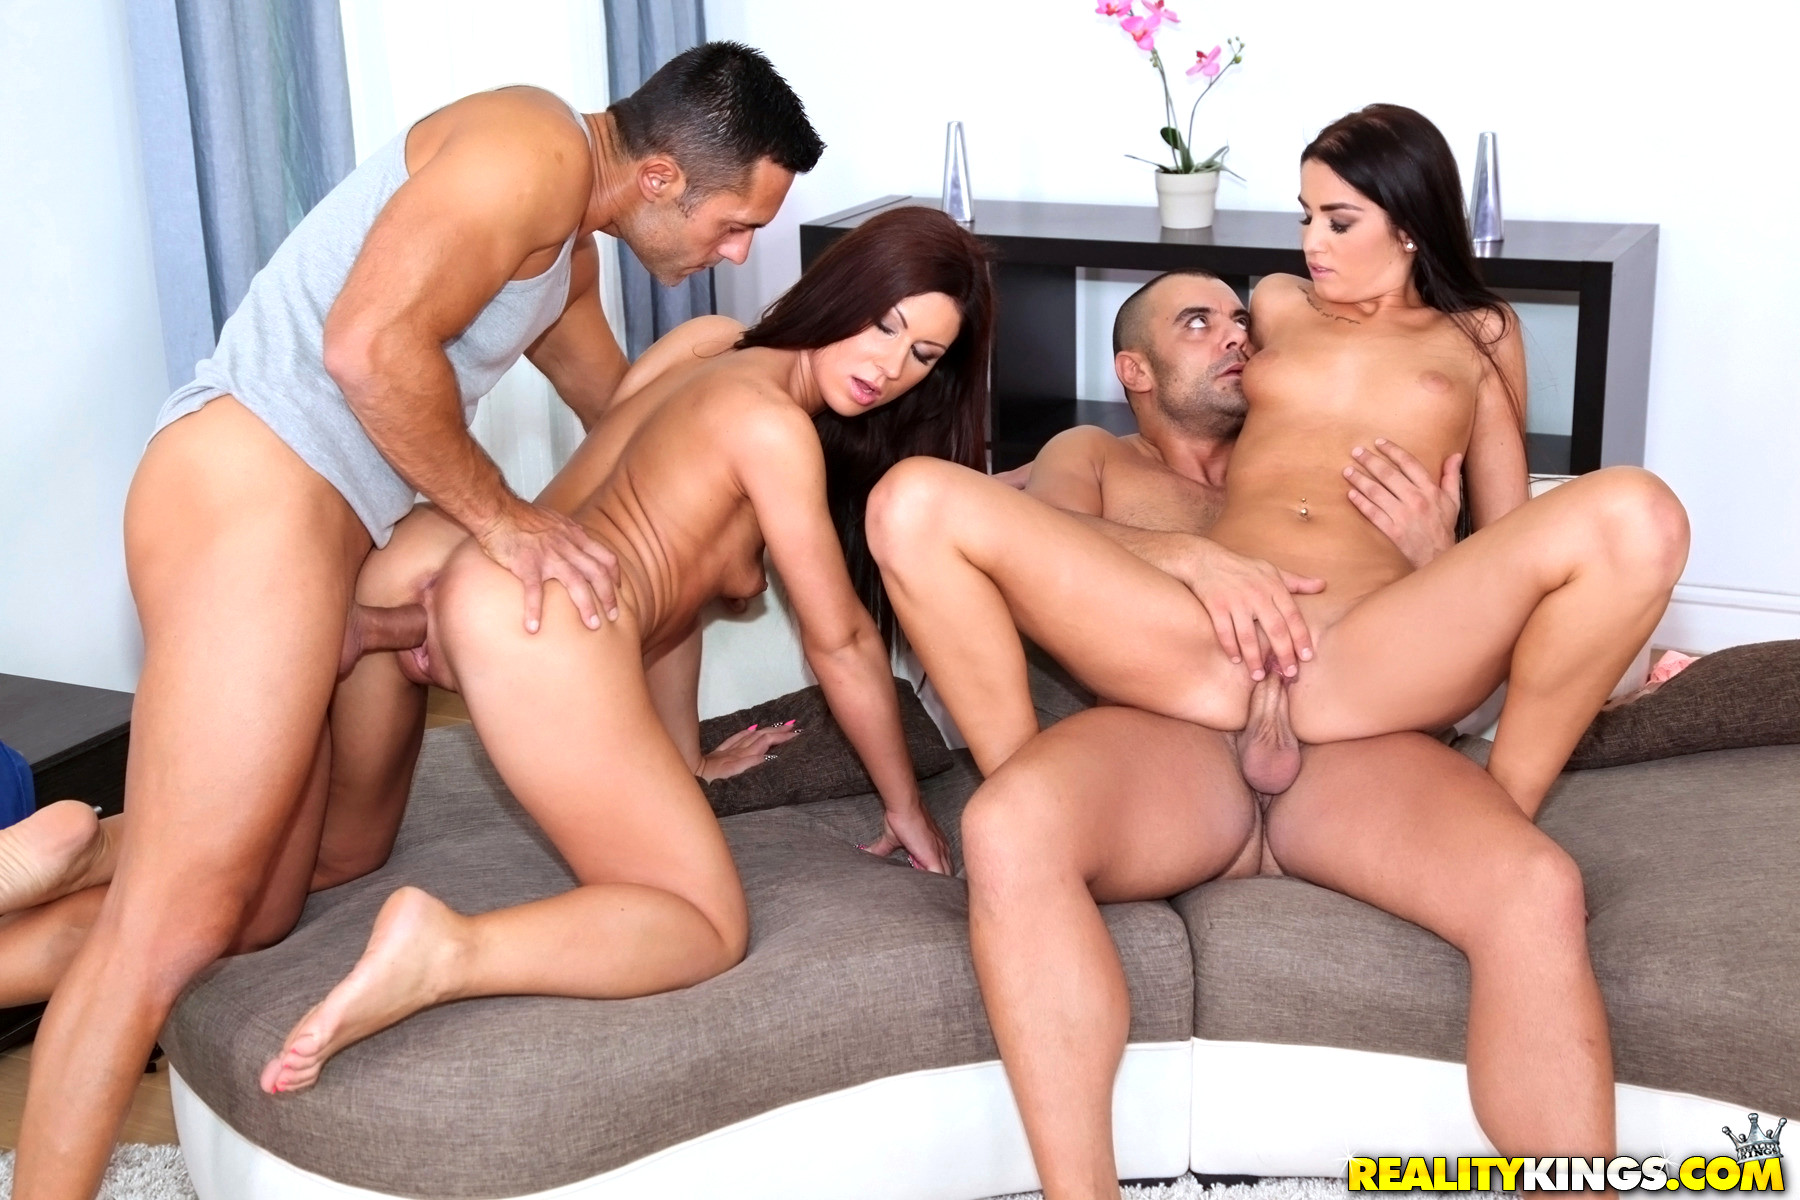 Free hd roccosiffredi euro sex party with dp anal girl on girl more porn photo